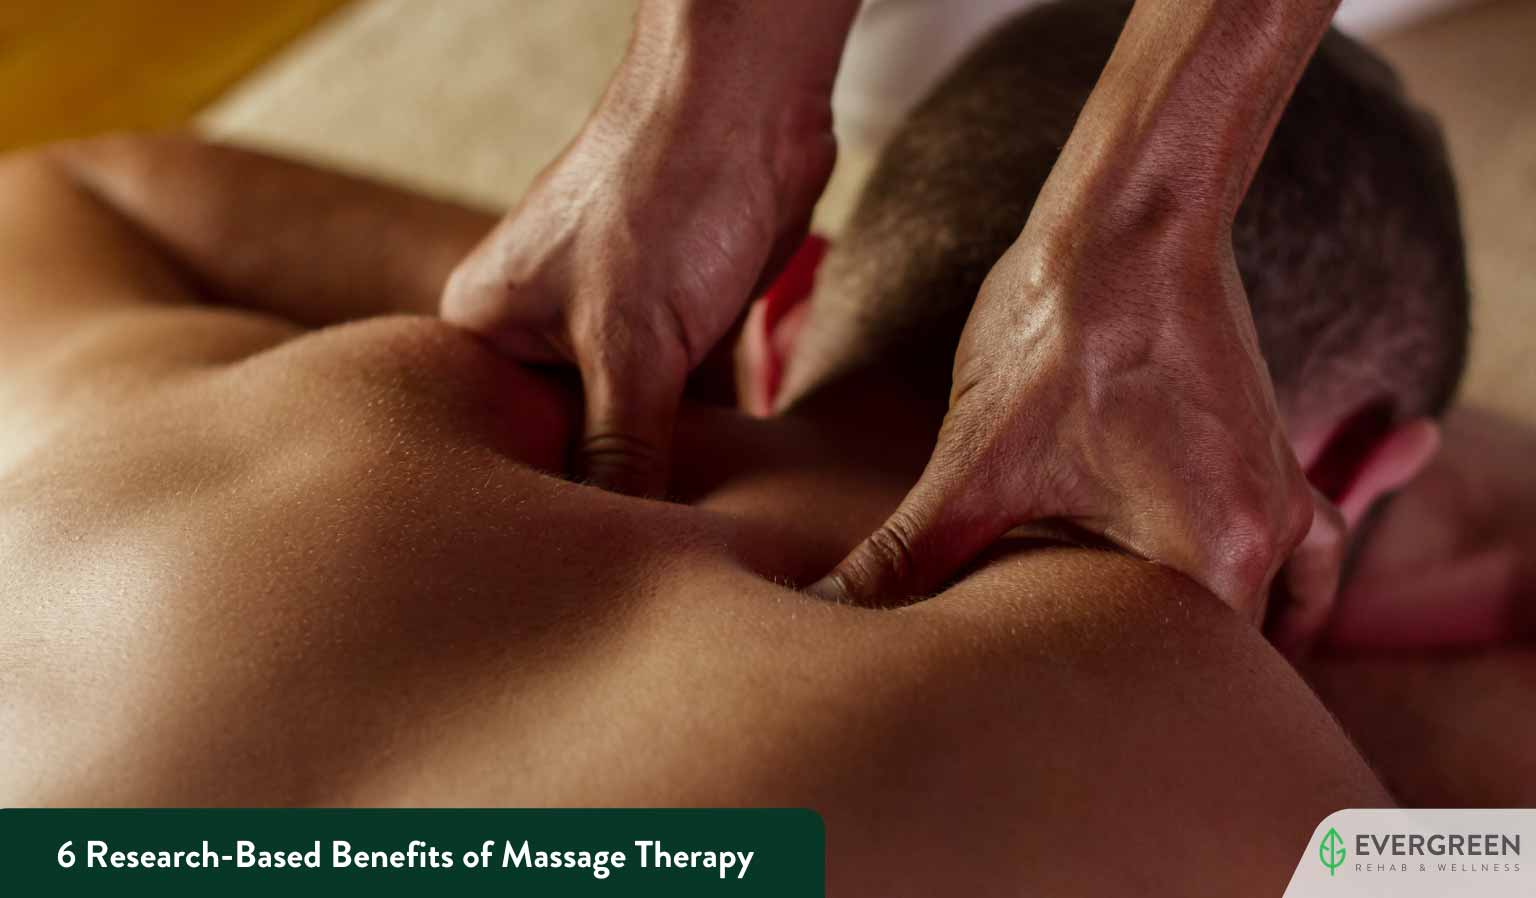 6 Research-Based Benefits of Massage Therapy